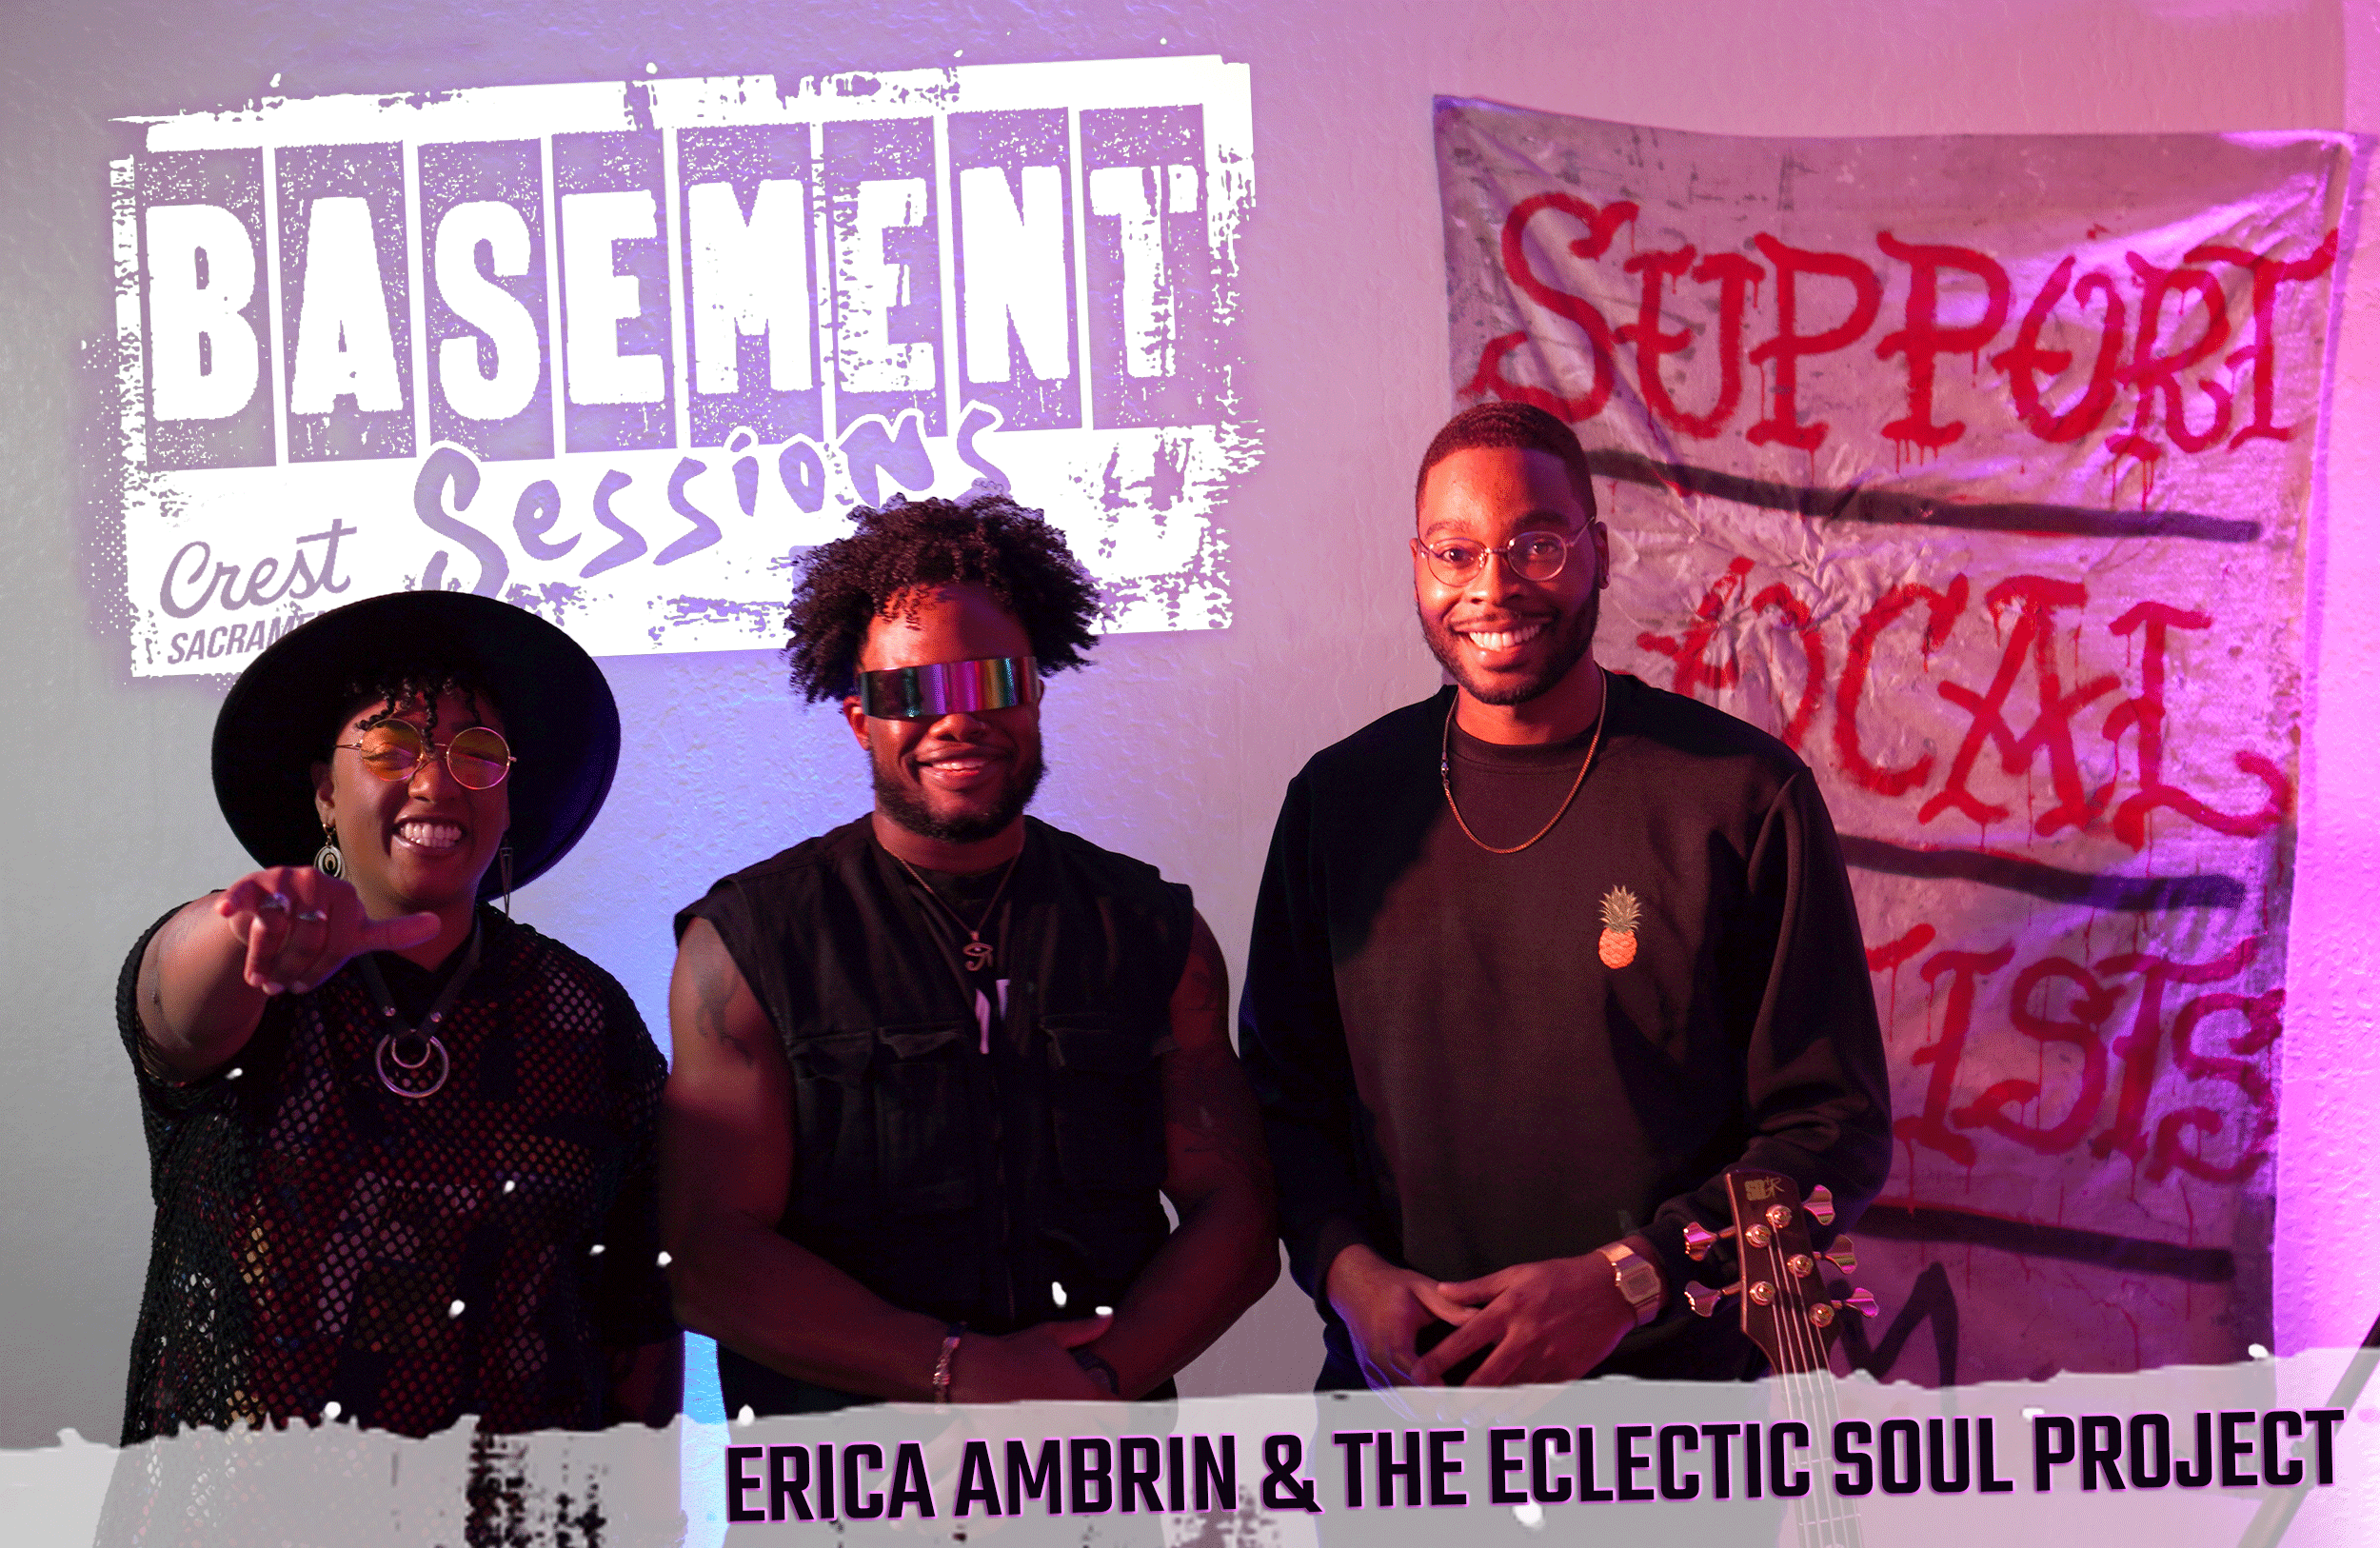 Erica Ambrin & The Eclectic Soul Project